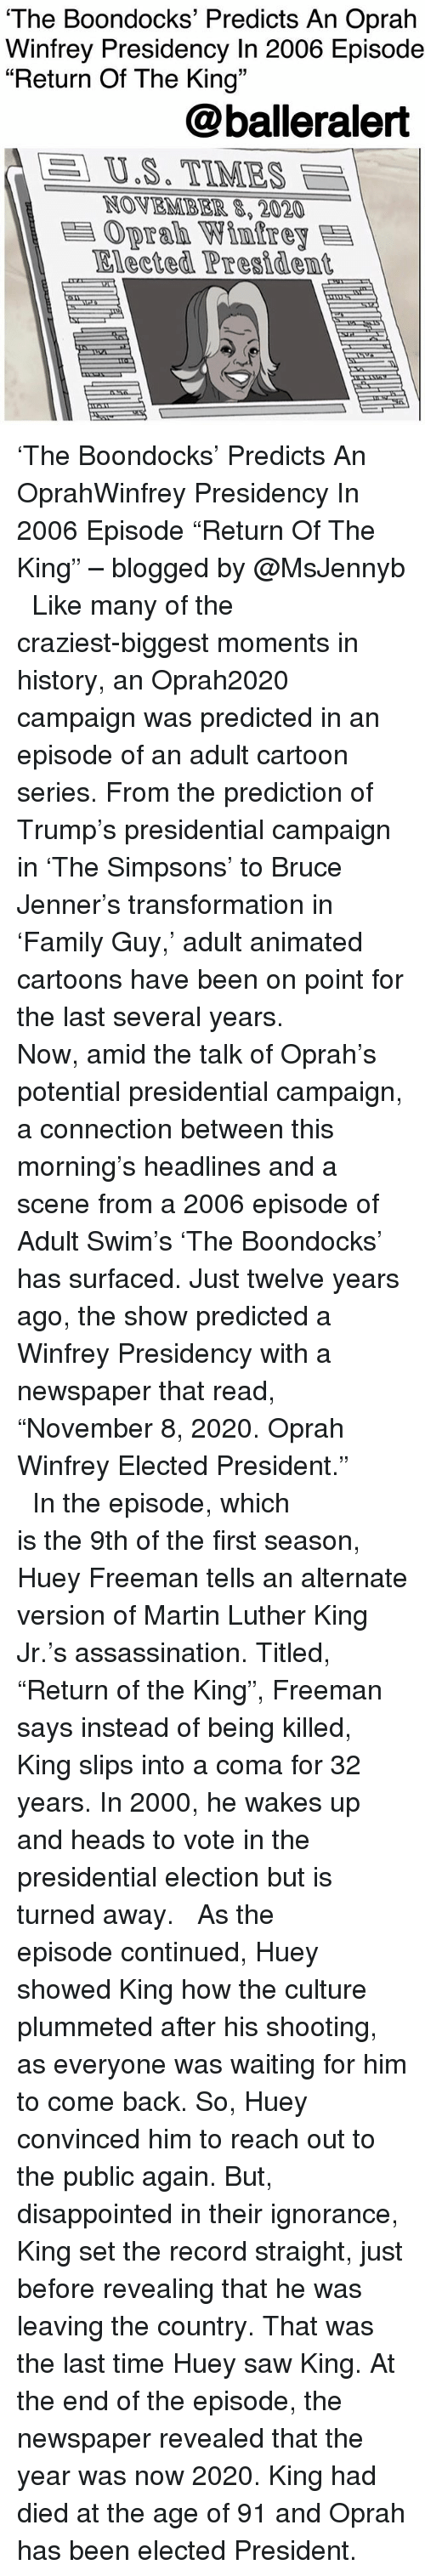 """Oprah Winfrey: The Boondocks' Predicts An Oprah  Winfrey Presidency In 2006 Episode  """"Return Of The King""""  13  @balleralert  A  US. TIMES  NOVEMBER 8,2020  Oprah Winfrey  Elected Presidem 'The Boondocks' Predicts An OprahWinfrey Presidency In 2006 Episode """"Return Of The King"""" – blogged by @MsJennyb ⠀⠀⠀⠀⠀⠀⠀ ⠀⠀⠀⠀⠀⠀⠀ Like many of the craziest-biggest moments in history, an Oprah2020 campaign was predicted in an episode of an adult cartoon series. From the prediction of Trump's presidential campaign in 'The Simpsons' to Bruce Jenner's transformation in 'Family Guy,' adult animated cartoons have been on point for the last several years. ⠀⠀⠀⠀⠀⠀⠀ ⠀⠀⠀⠀⠀⠀⠀ Now, amid the talk of Oprah's potential presidential campaign, a connection between this morning's headlines and a scene from a 2006 episode of Adult Swim's 'The Boondocks' has surfaced. Just twelve years ago, the show predicted a Winfrey Presidency with a newspaper that read, """"November 8, 2020. Oprah Winfrey Elected President."""" ⠀⠀⠀⠀⠀⠀⠀ ⠀⠀⠀⠀⠀⠀⠀ In the episode, which is the 9th of the first season, Huey Freeman tells an alternate version of Martin Luther King Jr.'s assassination. Titled, """"Return of the King"""", Freeman says instead of being killed, King slips into a coma for 32 years. In 2000, he wakes up and heads to vote in the presidential election but is turned away. ⠀⠀⠀⠀⠀⠀⠀ ⠀⠀⠀⠀⠀⠀⠀ As the episode continued, Huey showed King how the culture plummeted after his shooting, as everyone was waiting for him to come back. So, Huey convinced him to reach out to the public again. But, disappointed in their ignorance, King set the record straight, just before revealing that he was leaving the country. That was the last time Huey saw King. At the end of the episode, the newspaper revealed that the year was now 2020. King had died at the age of 91 and Oprah has been elected President."""